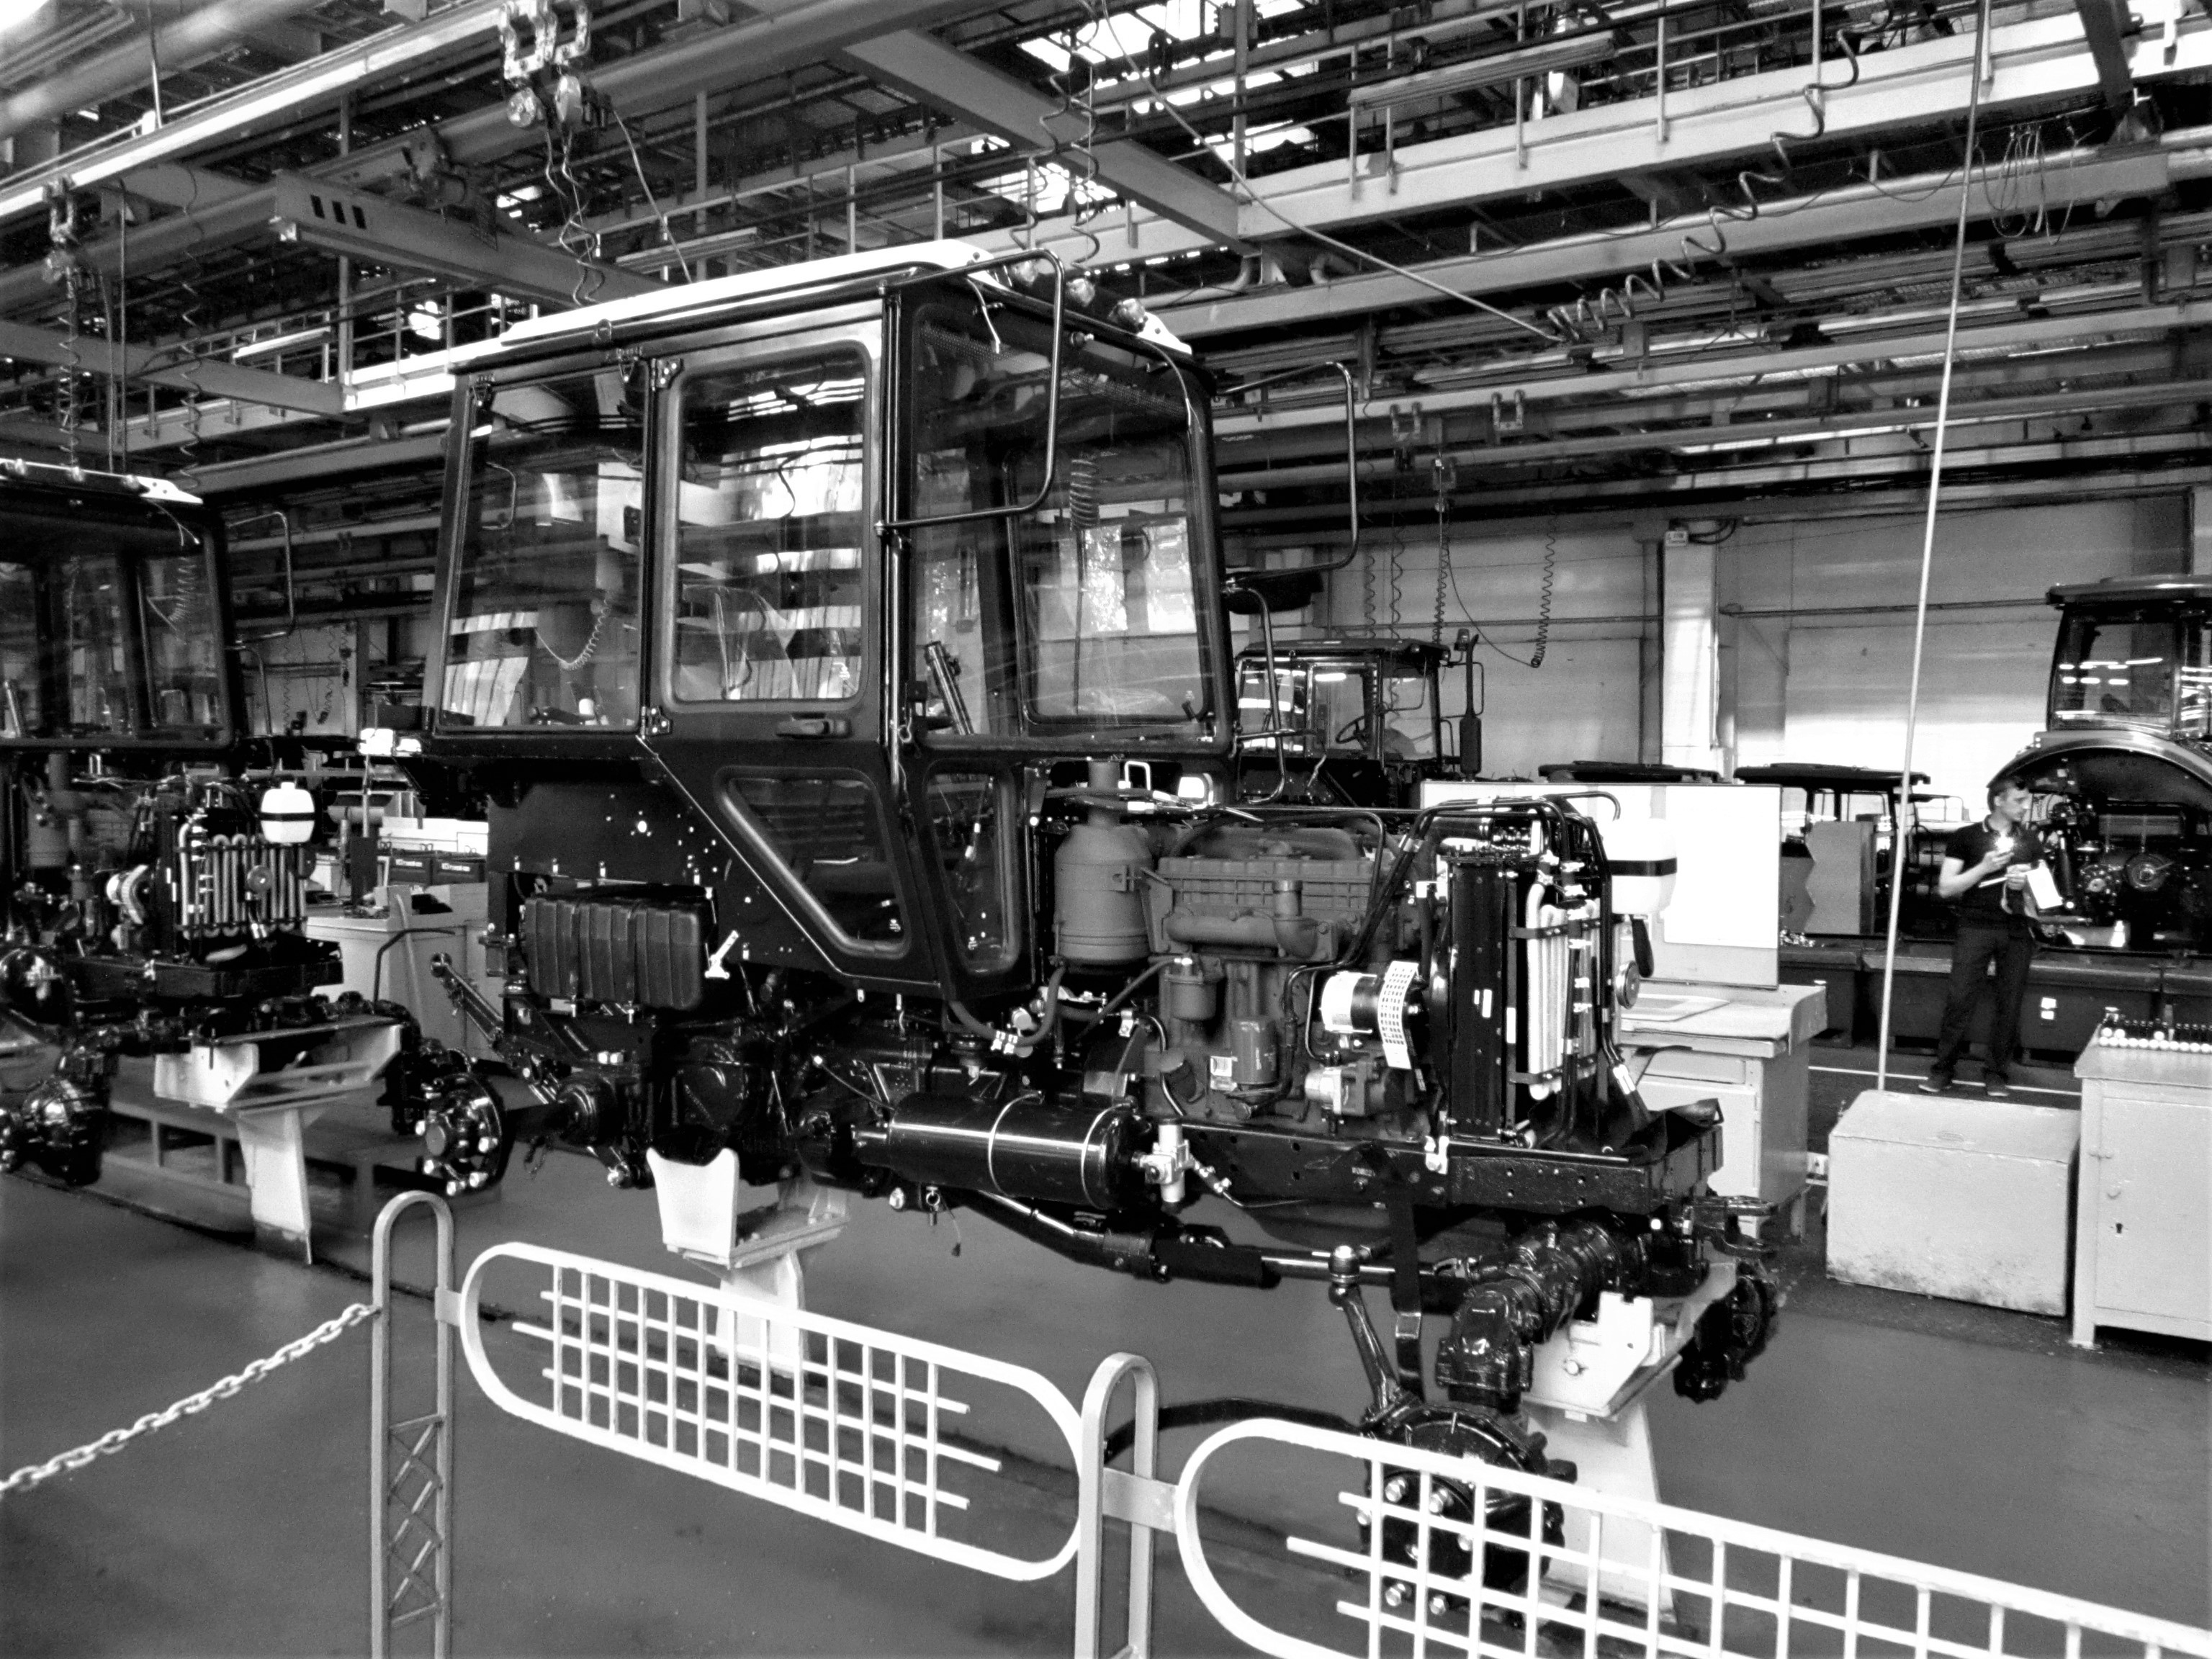 Minsk_Tractor_Works_-_Main_Assembly_Line_(Open_Day_2017)_2.jpg